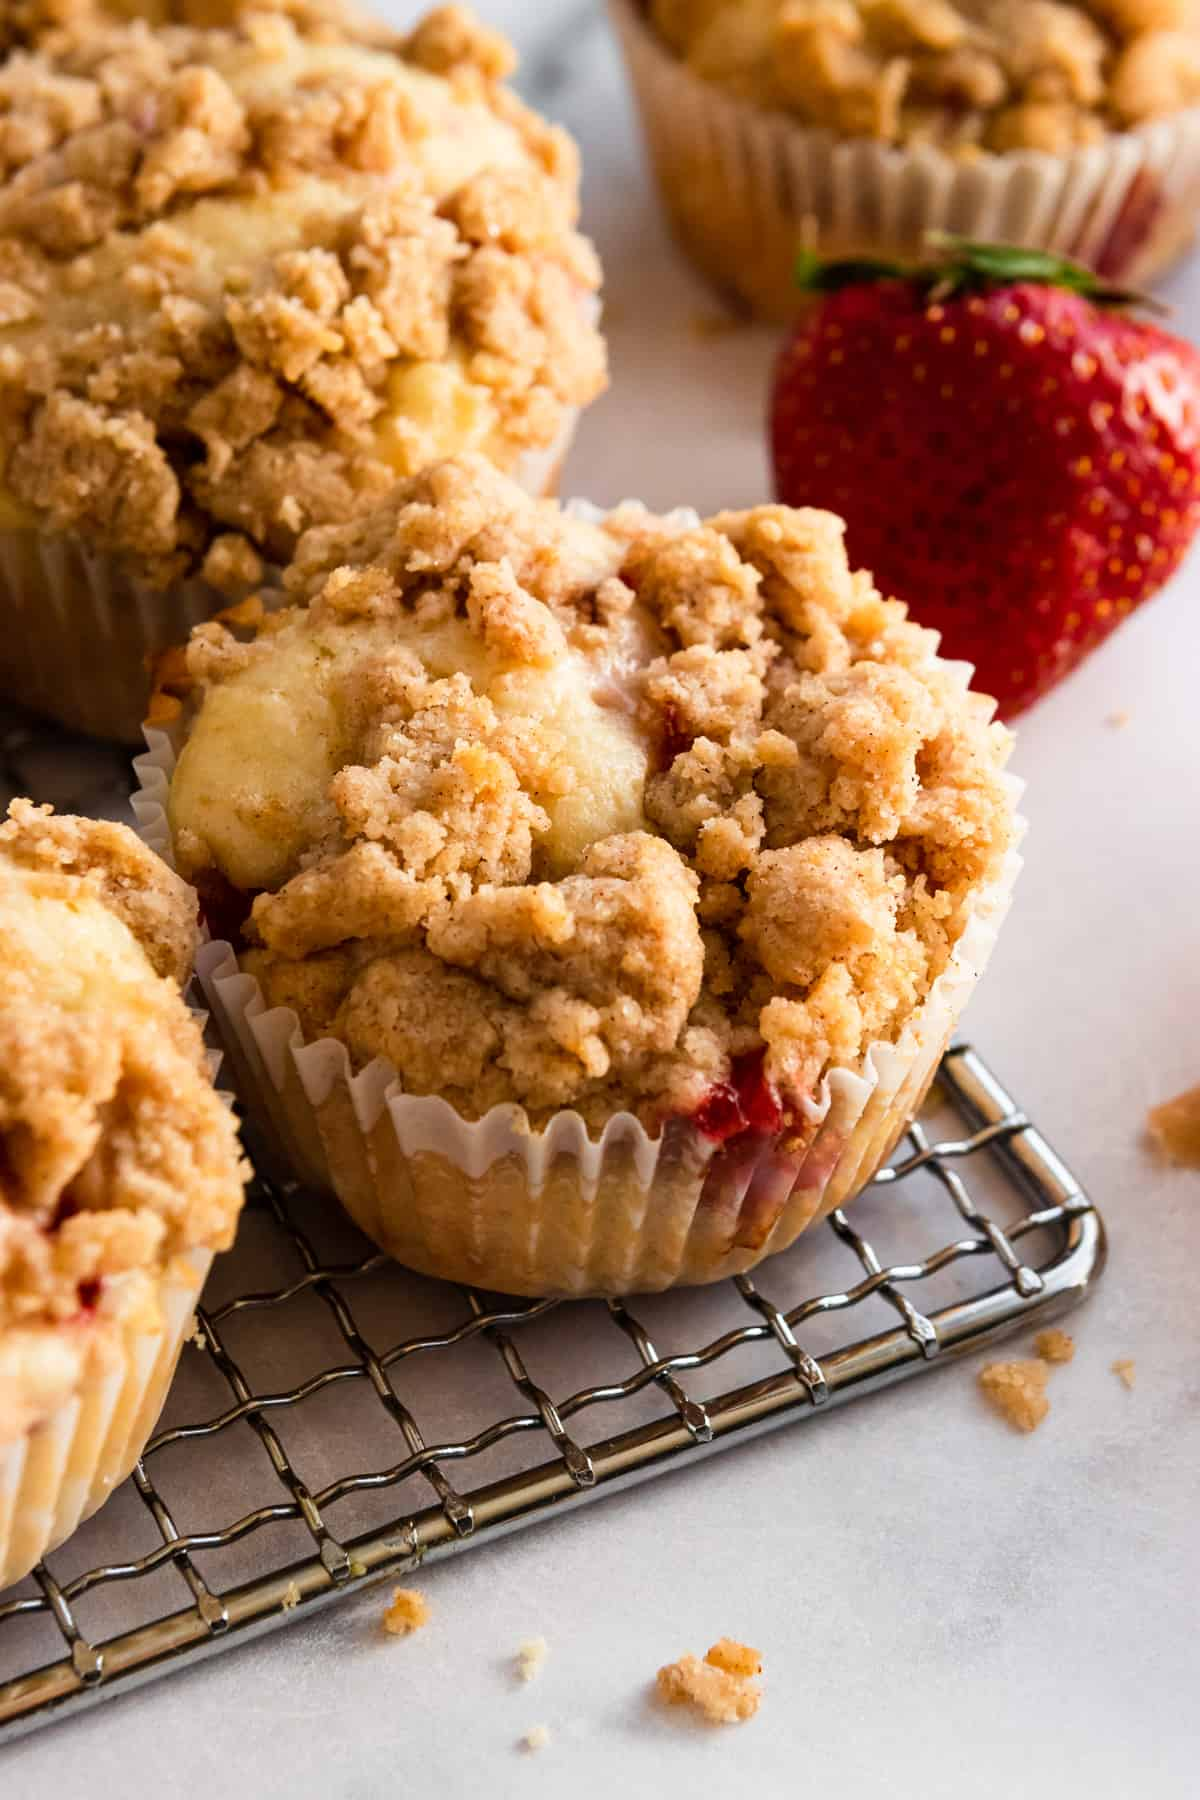 Strawberry muffins on cooling rack with strawberries and crumbs next to it.